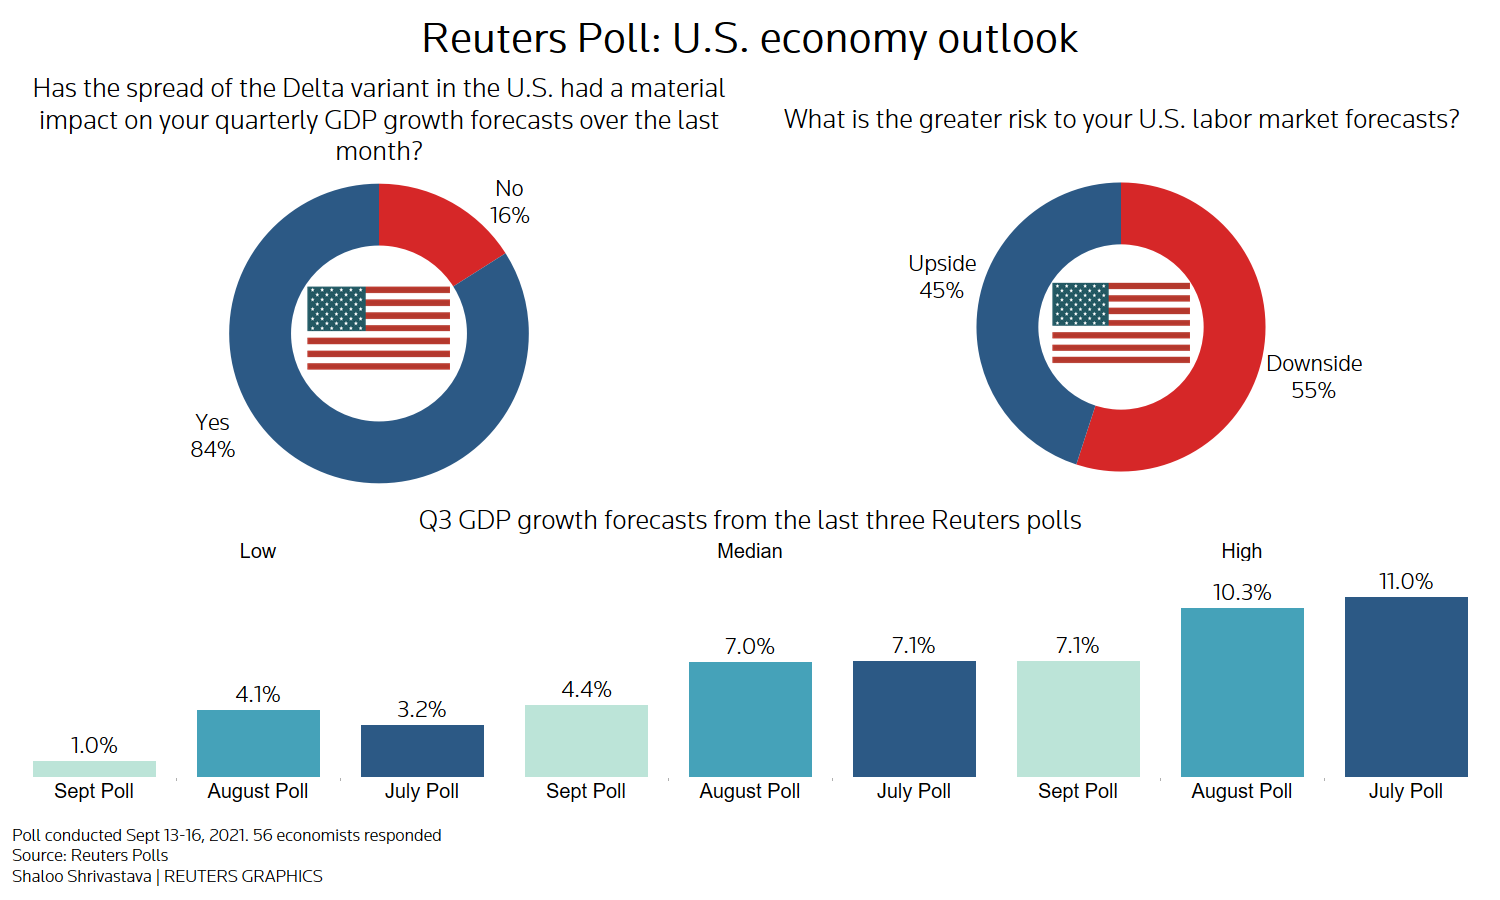 Reuters poll graphic on the U.S. economic outlook: